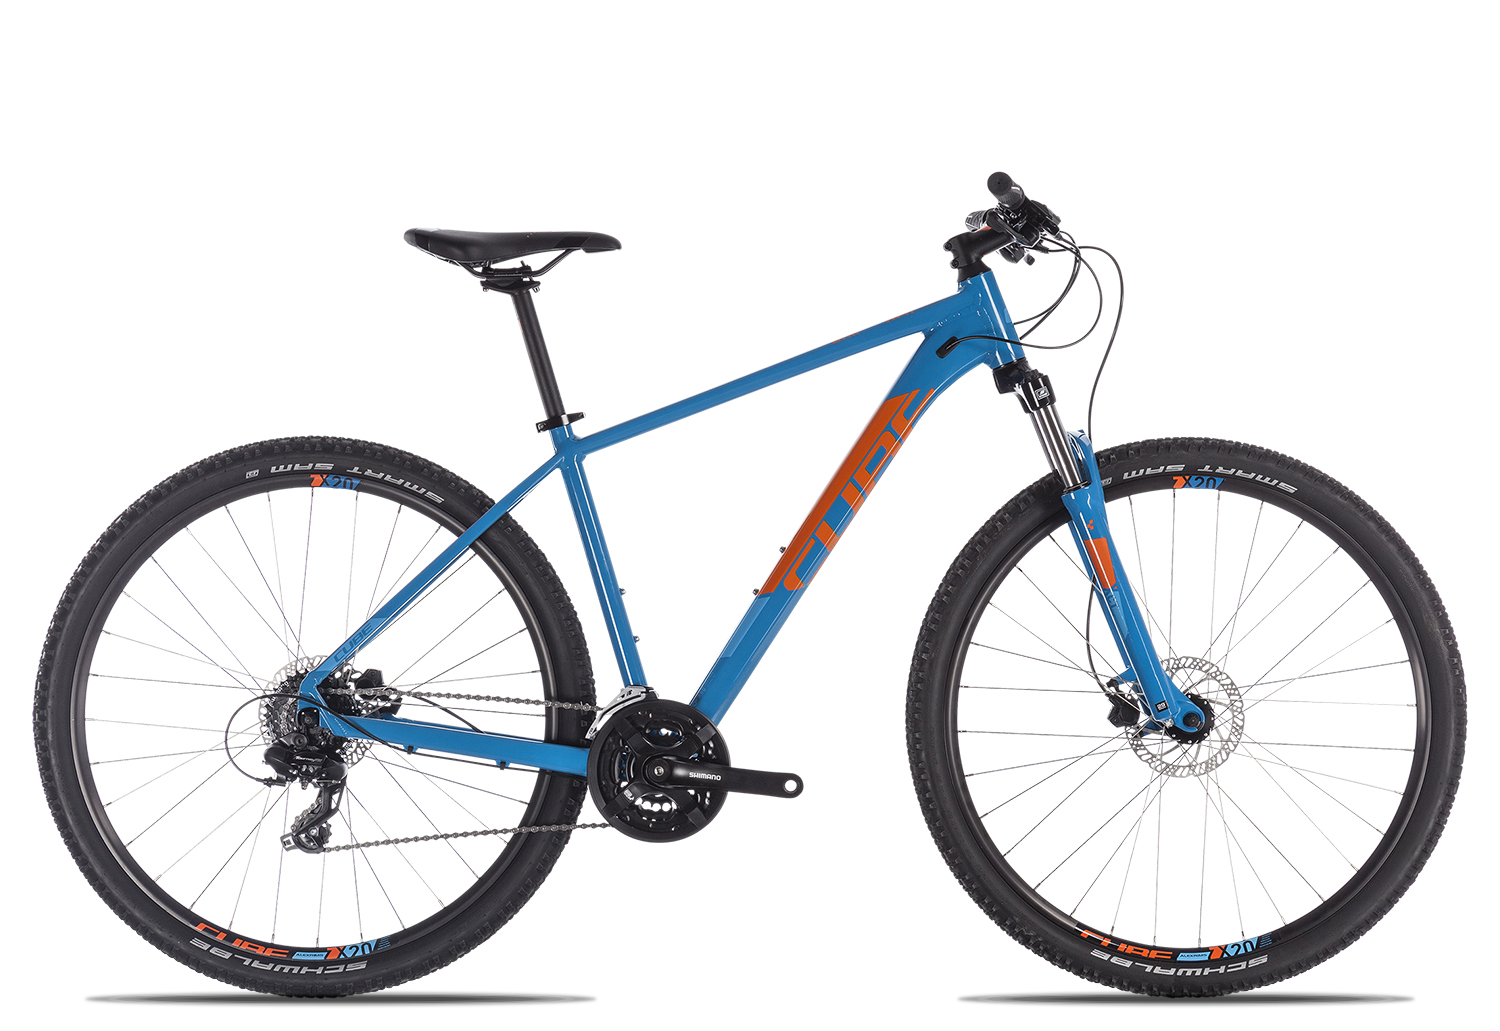 Cube Aim Pro 2019 14 Zoll | blue'n'orange | 27.5 Zoll